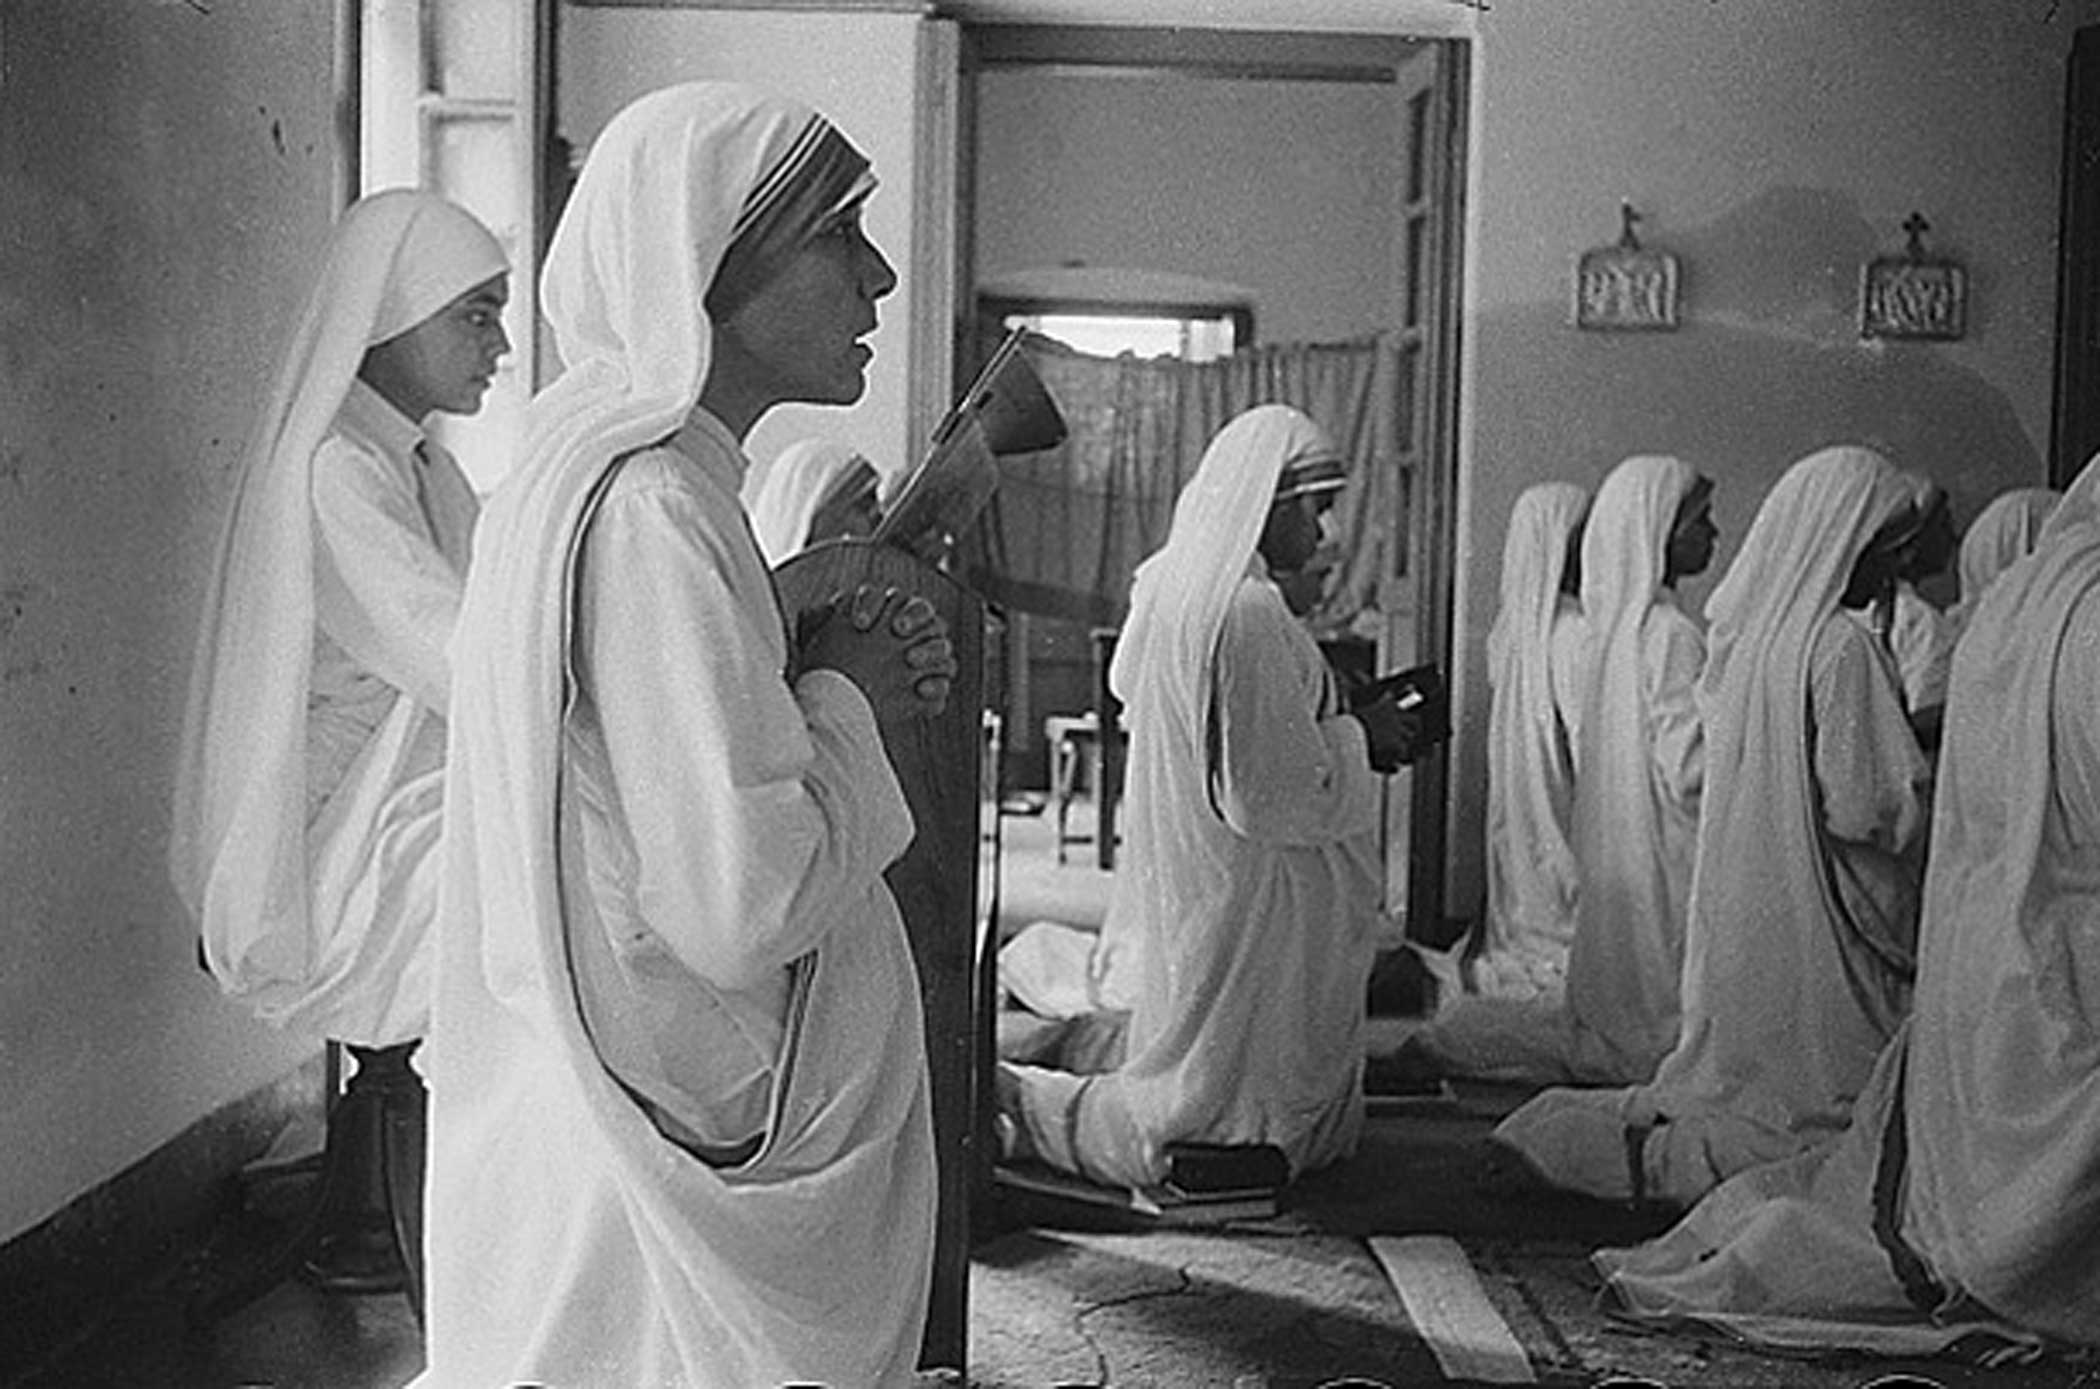 Inspired by a vision of Jesus, Teresa began her endeavor alone, but was soon joined by others. Until a branch for Catholic brothers was founded in 1963, the Missionaries of Charity were all women.